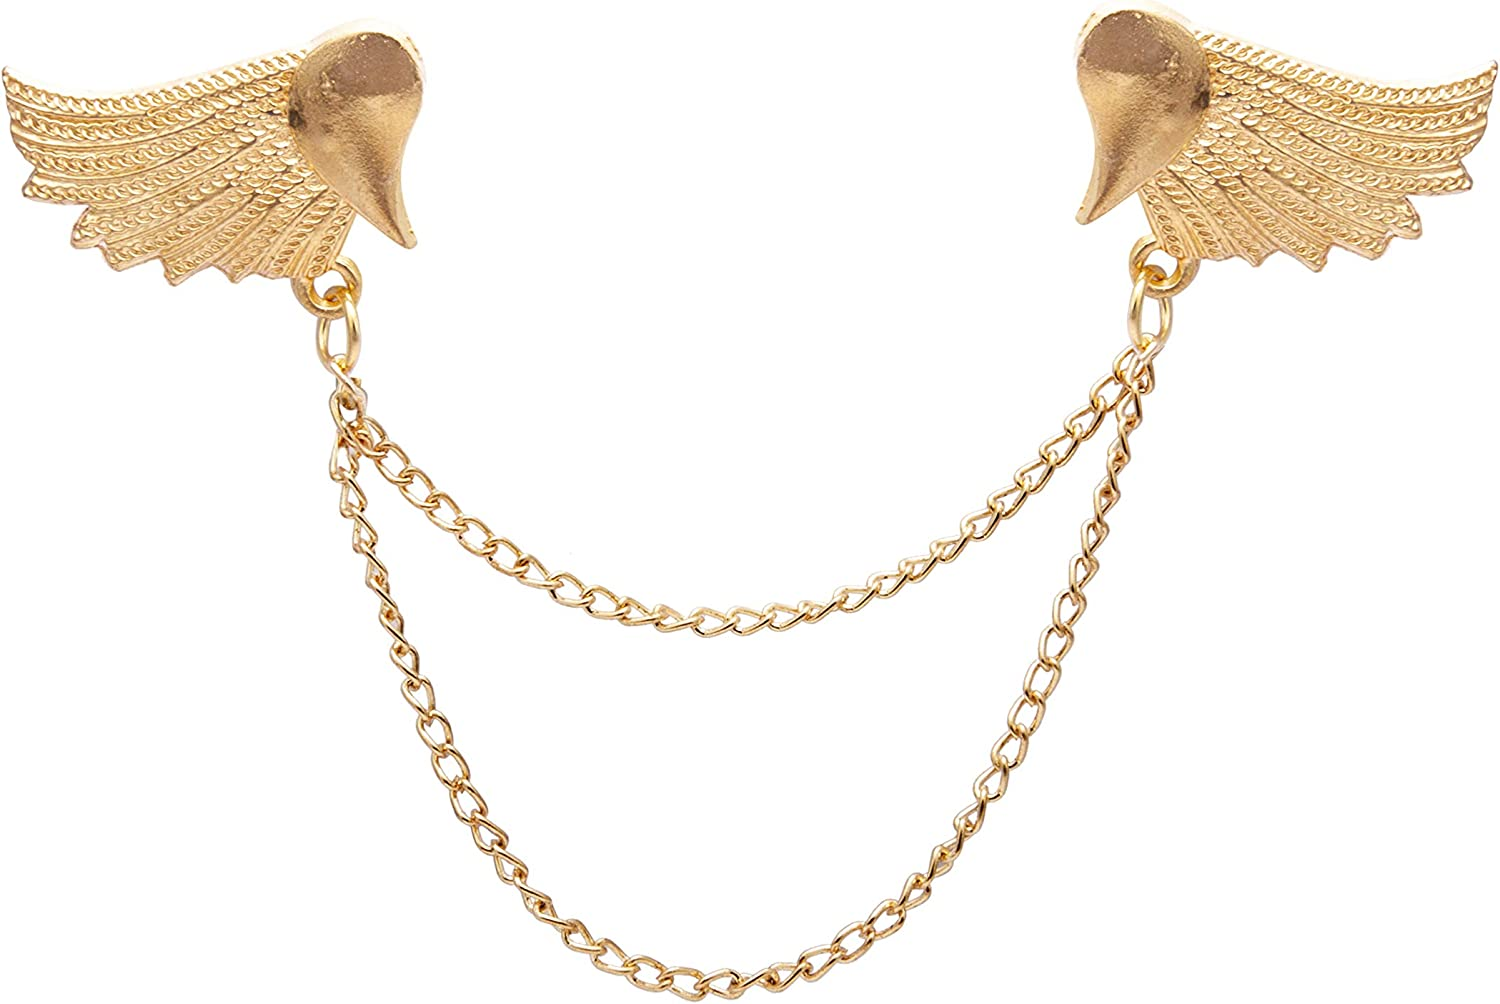 Knighthood Golden Wing Pair With Hanging Chain Alloy Brooch/Collar Pin/Lapel Pin for Men